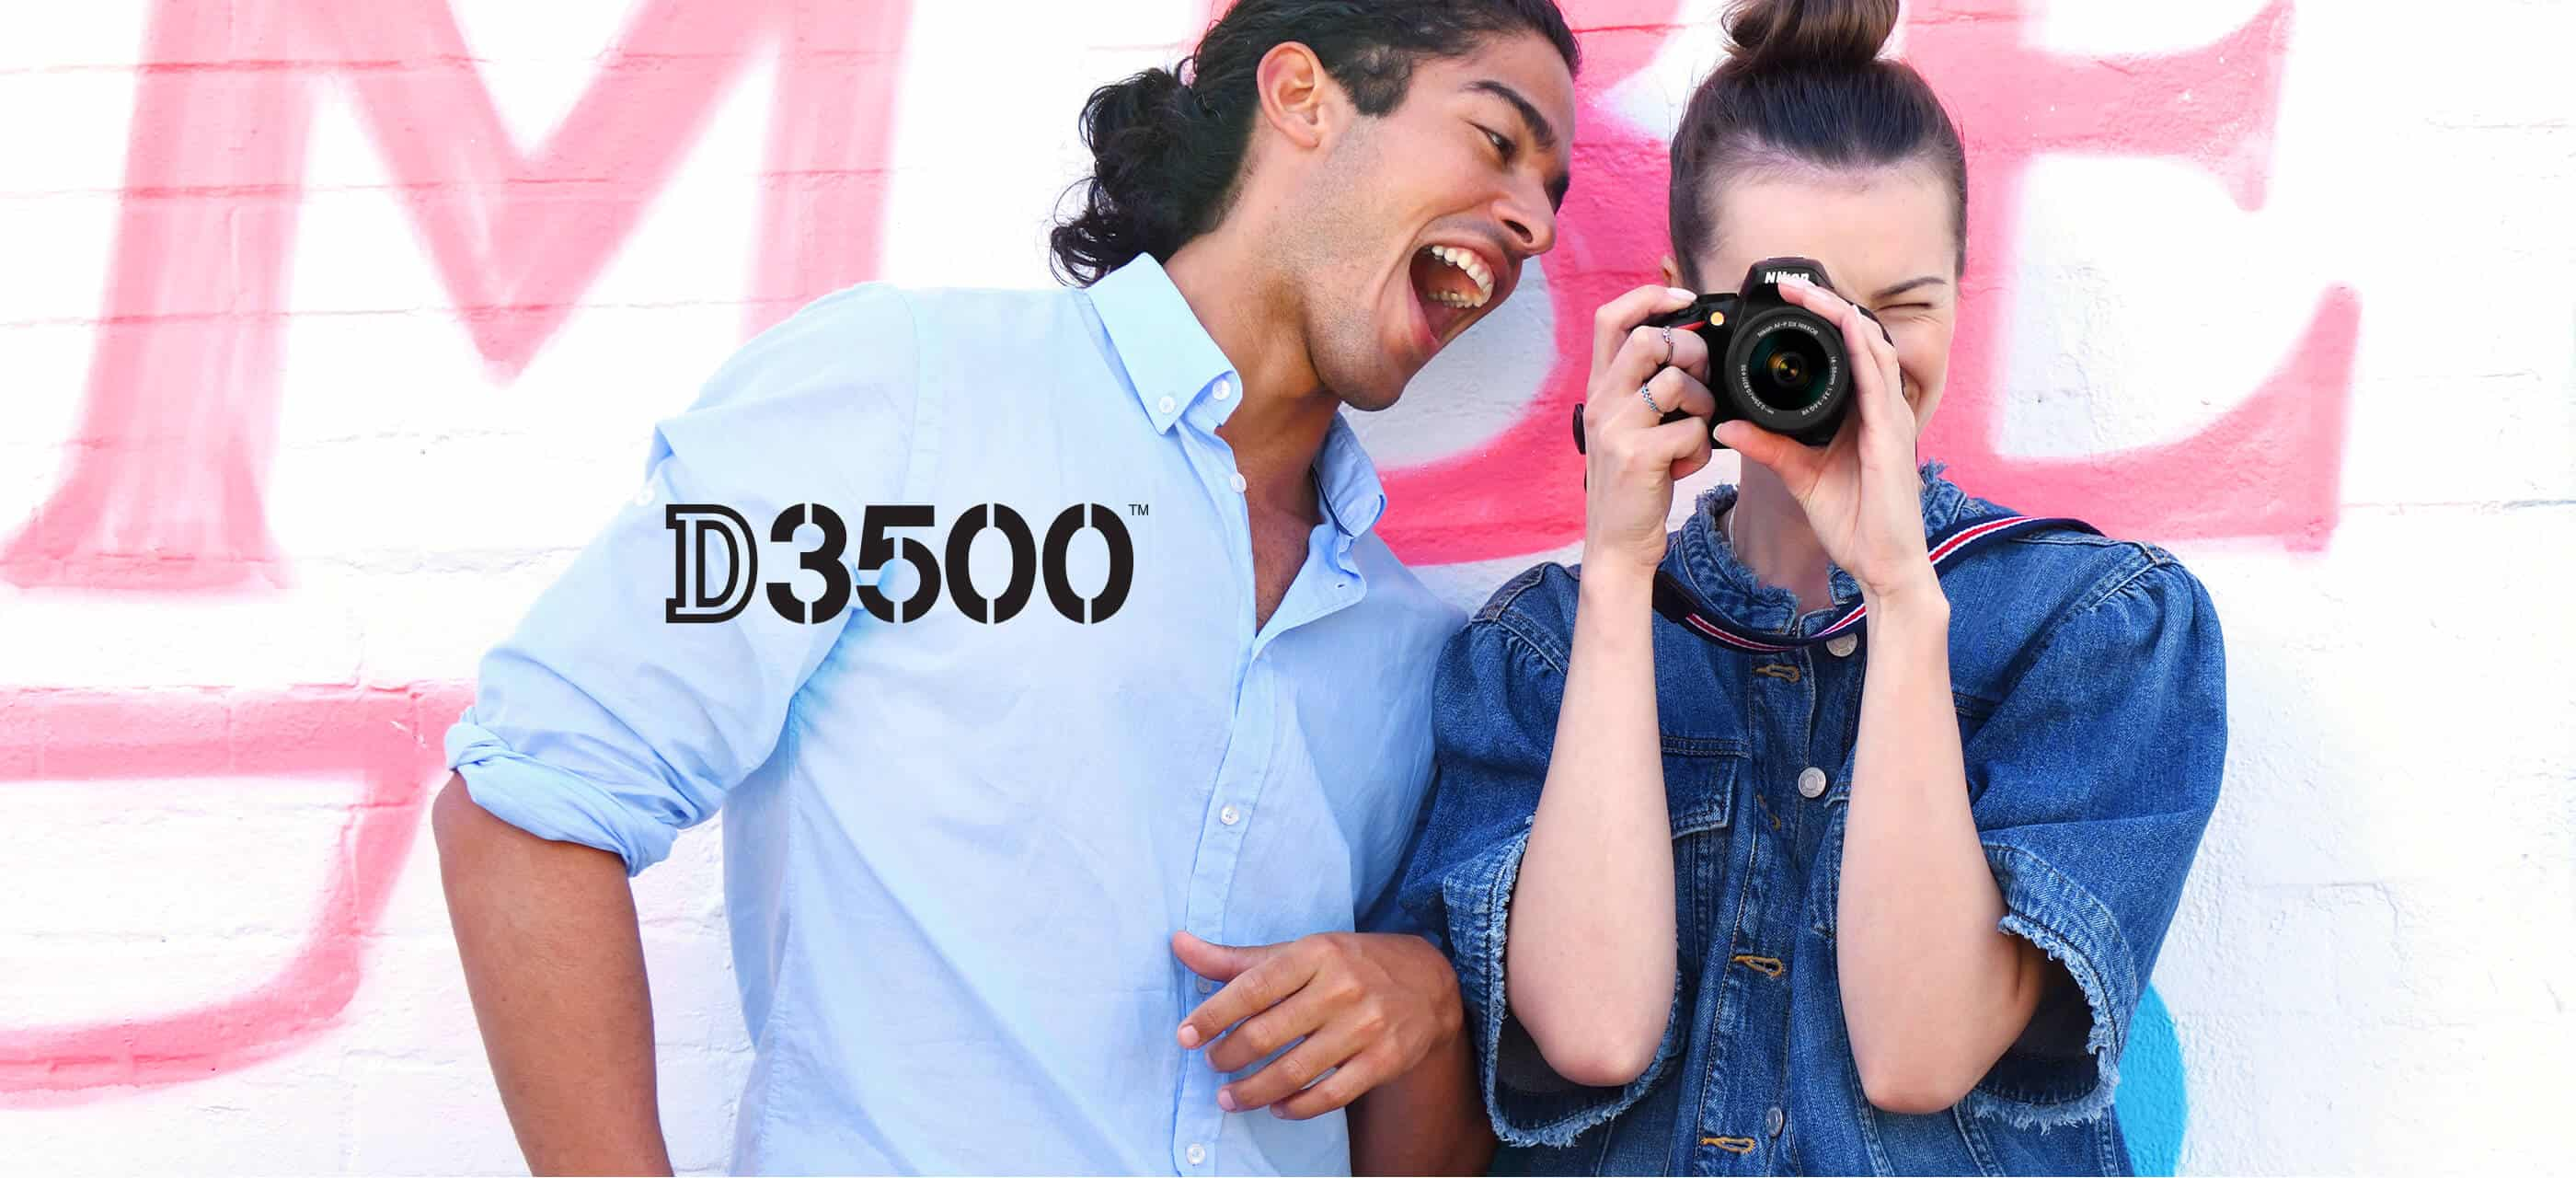 Nikon D3500 DSLR | Interchangeable Lens Camera